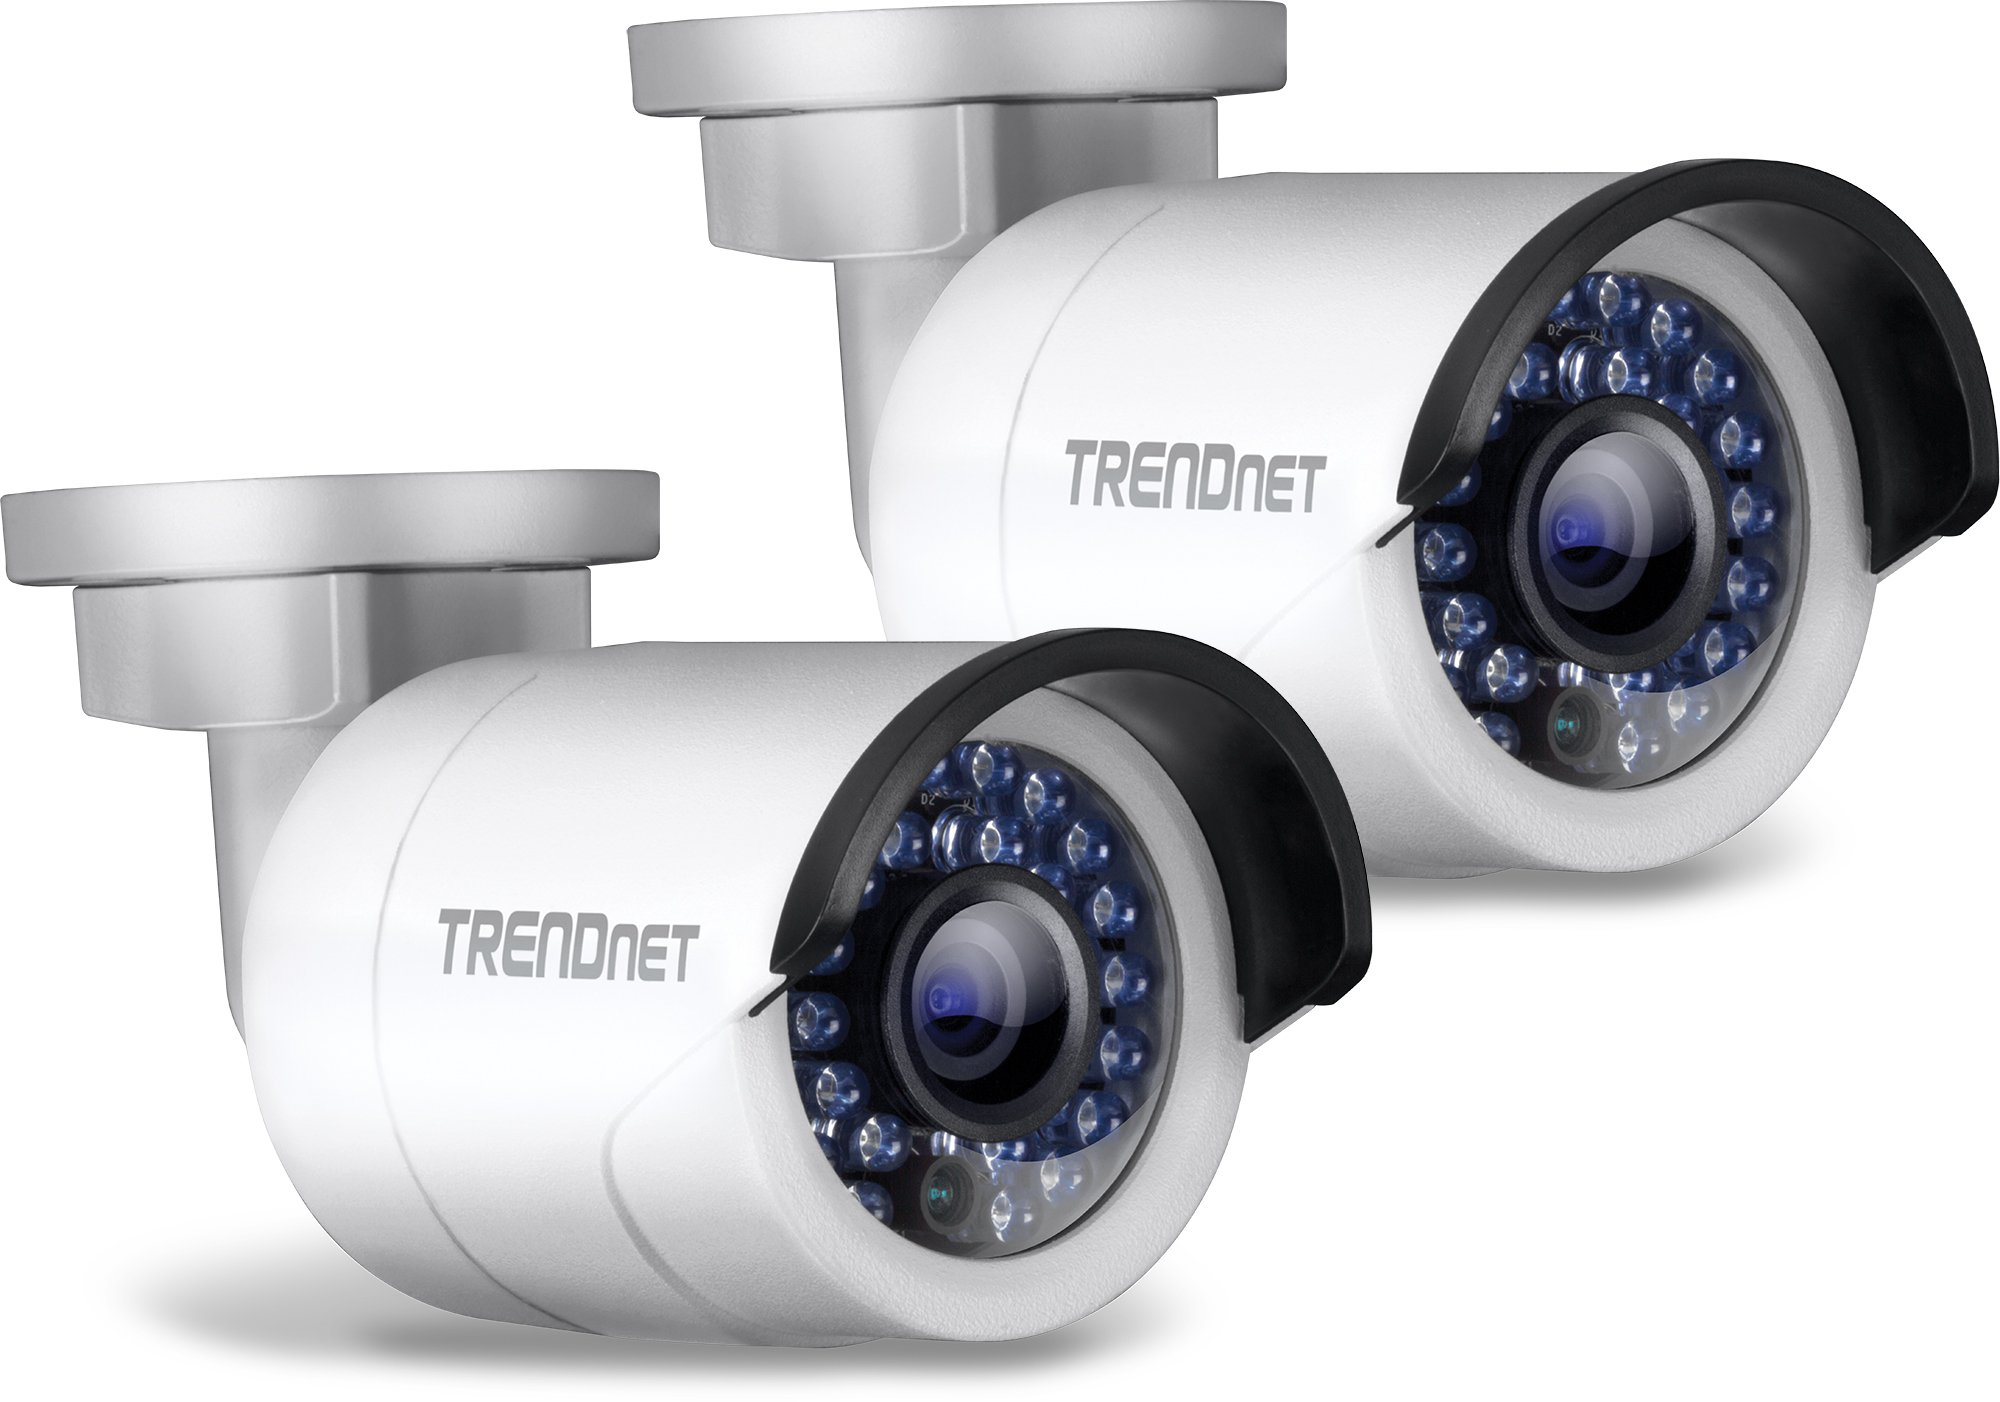 TRENDnet Indoor/Outdoor 1.3 Megapixel HD PoE IR Bullet Style Network Camera Twin Pack, Digital WDR, 720p, IP66 Rated Housing, 100ft. Night Vision, TV-IP320PI2K